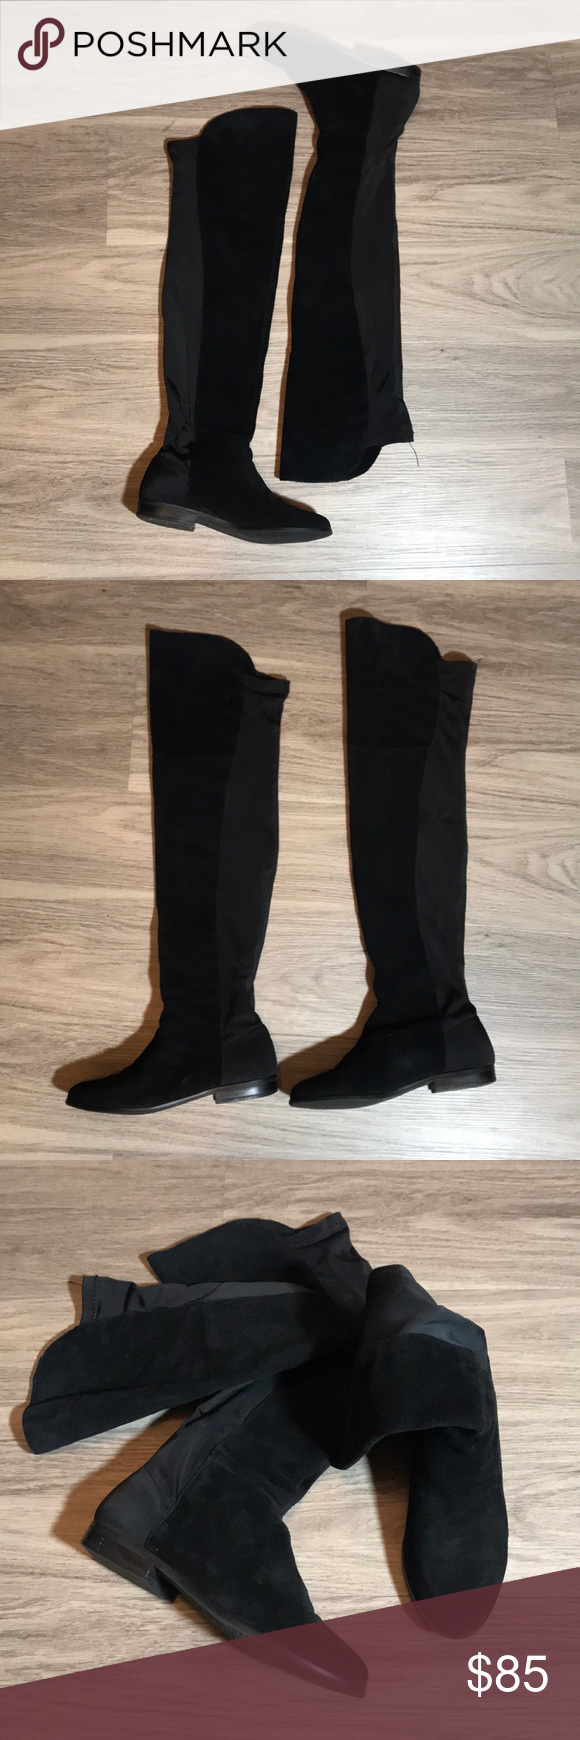 76a91ed7e76 CHINESE LAUNDRY over the knee boots Black suede Over the knee boot.  Beautiful boots.